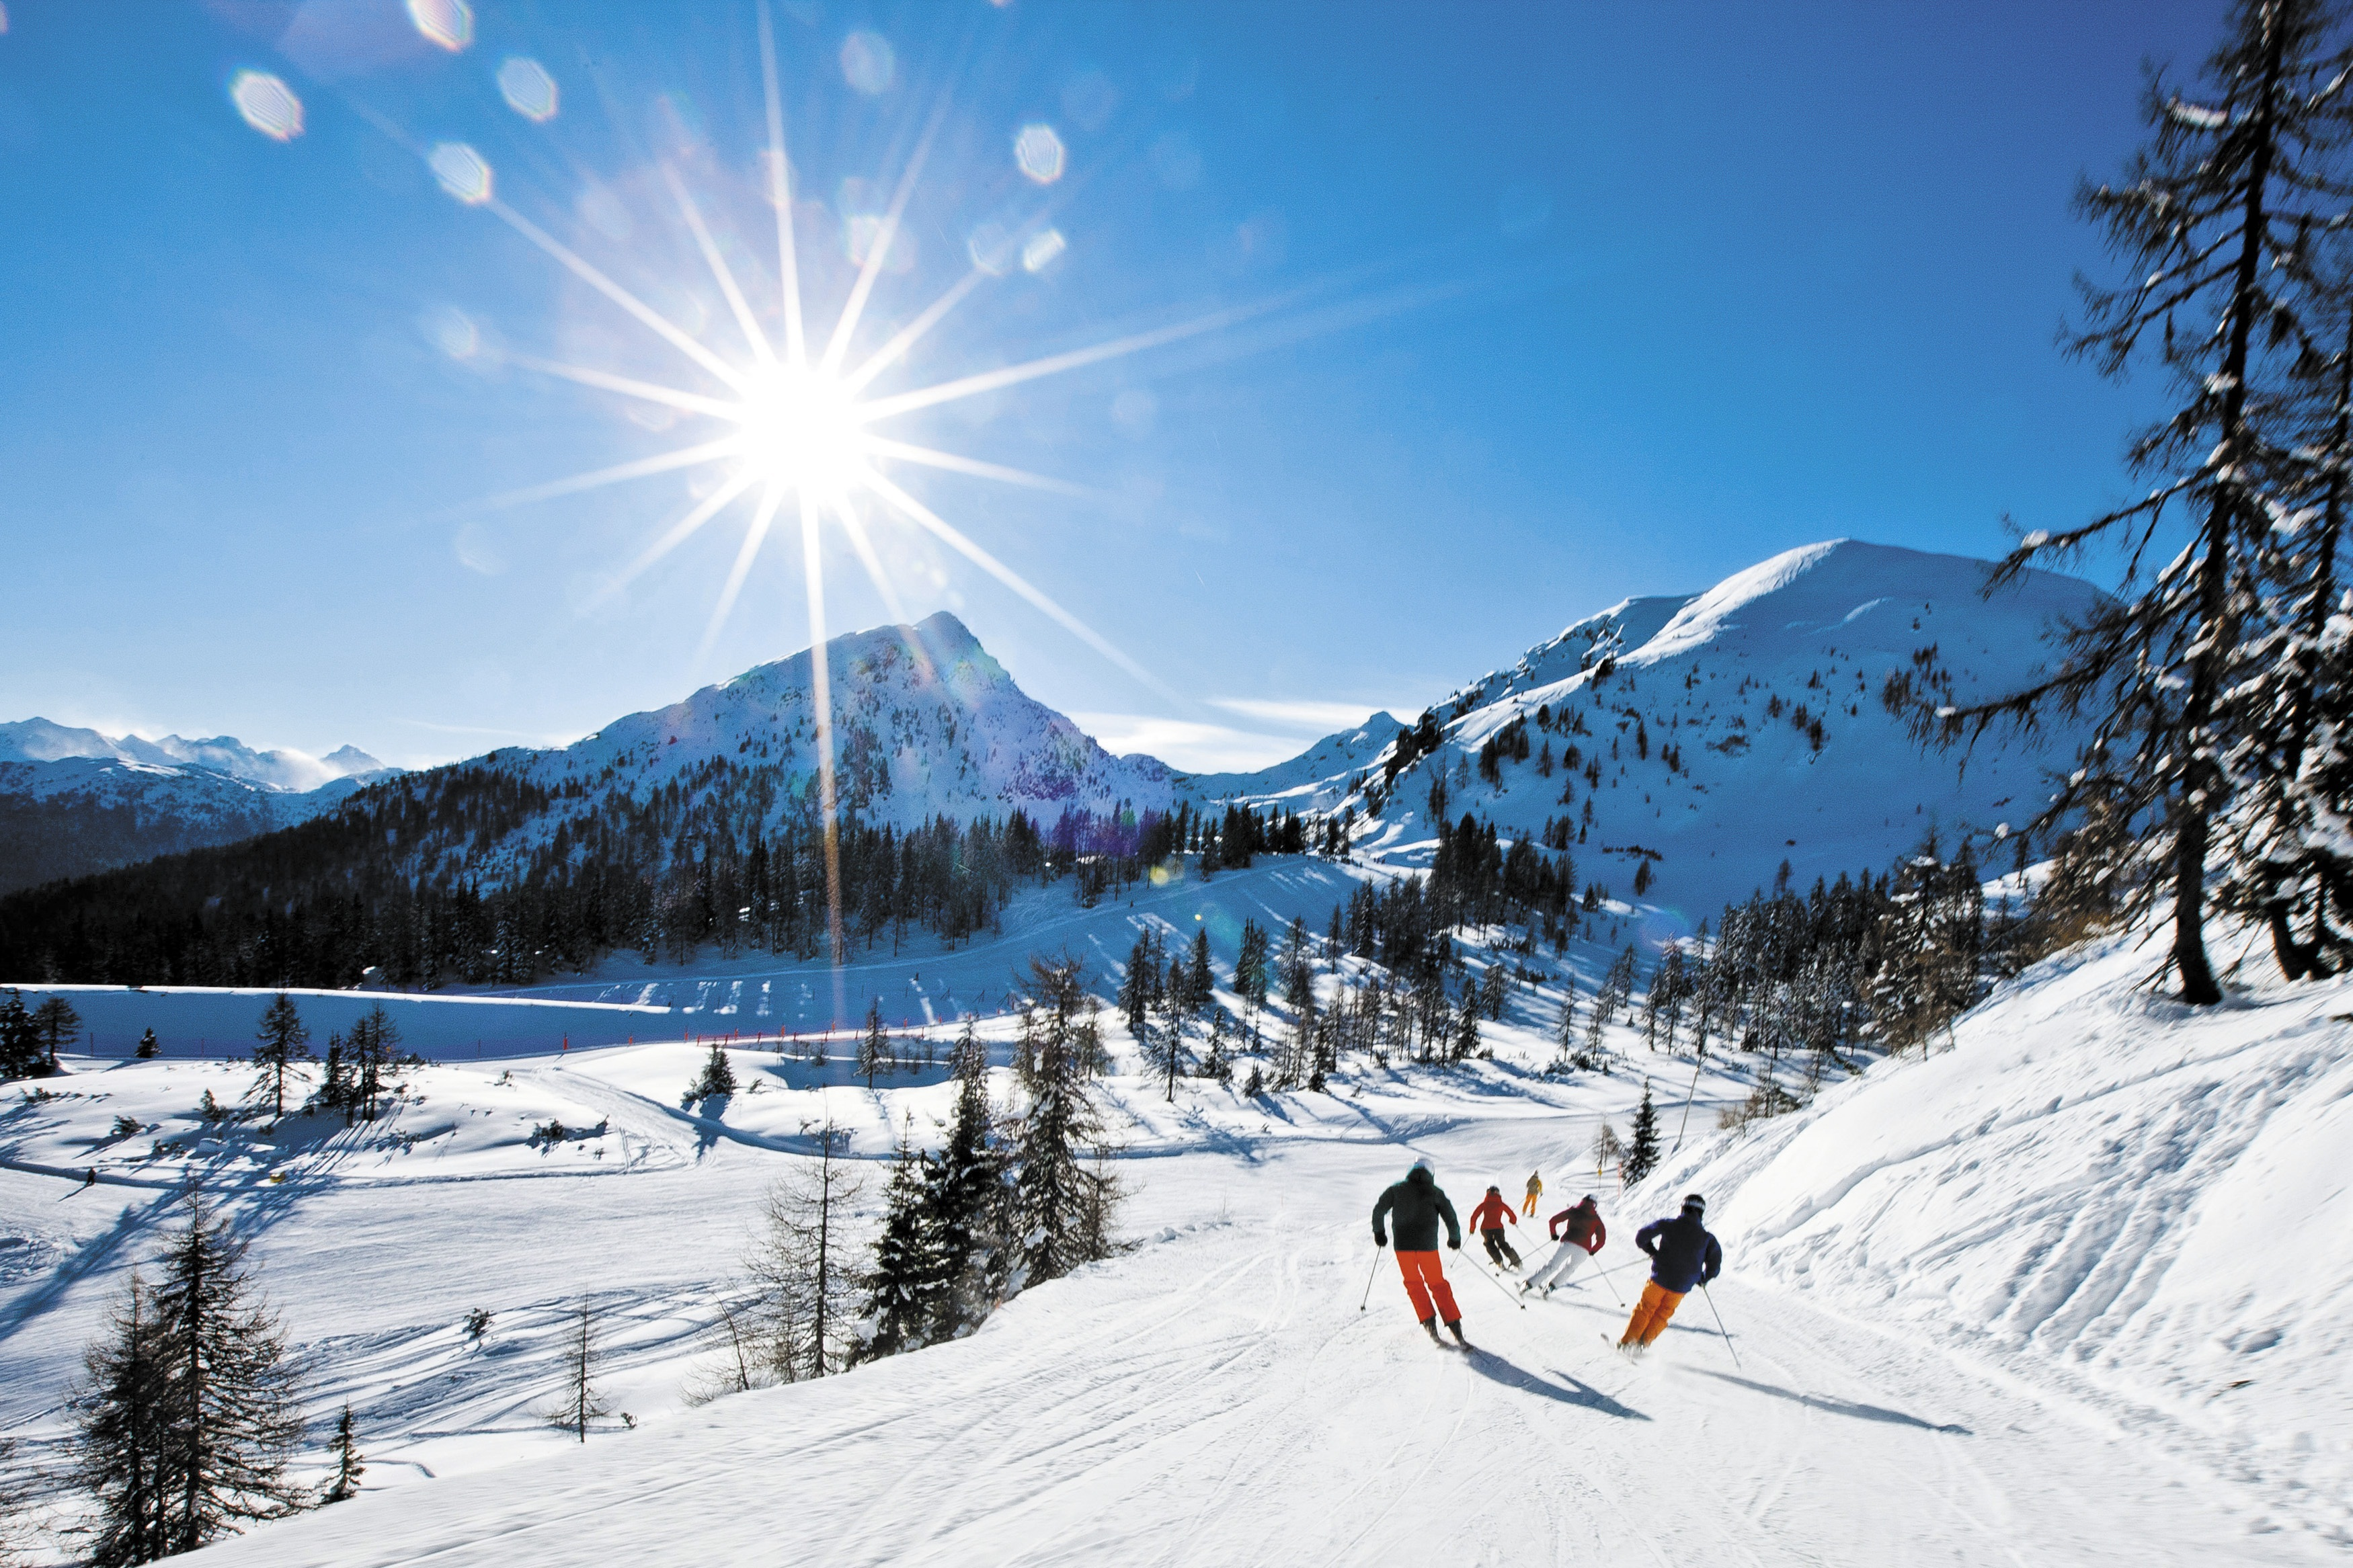 Skiing in the ski resort of Schladming Austria wallpapers and images 3500x2333